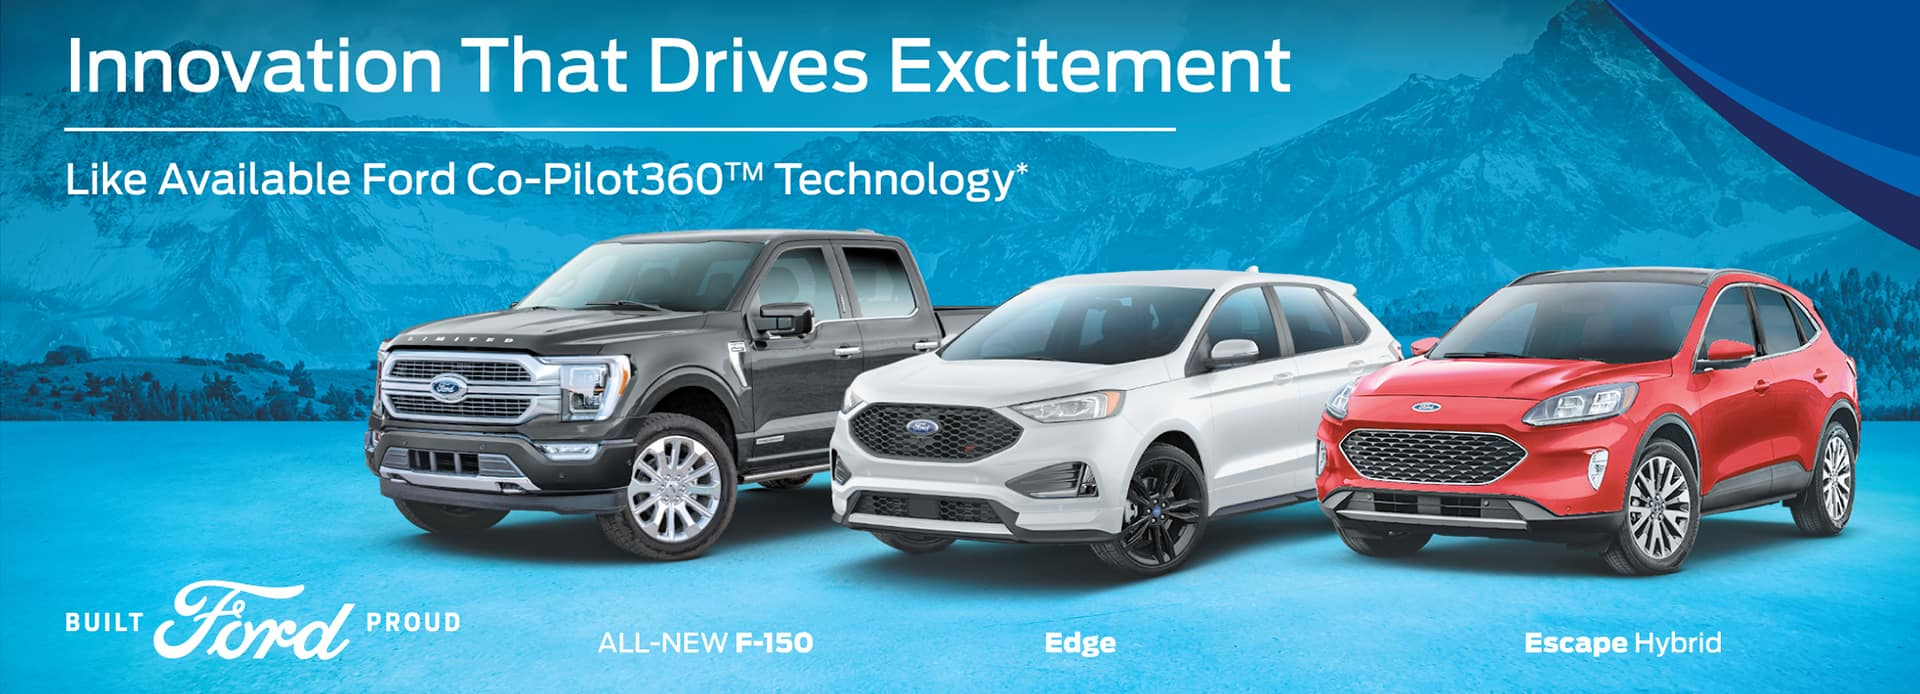 Discovery Ford May Innovation